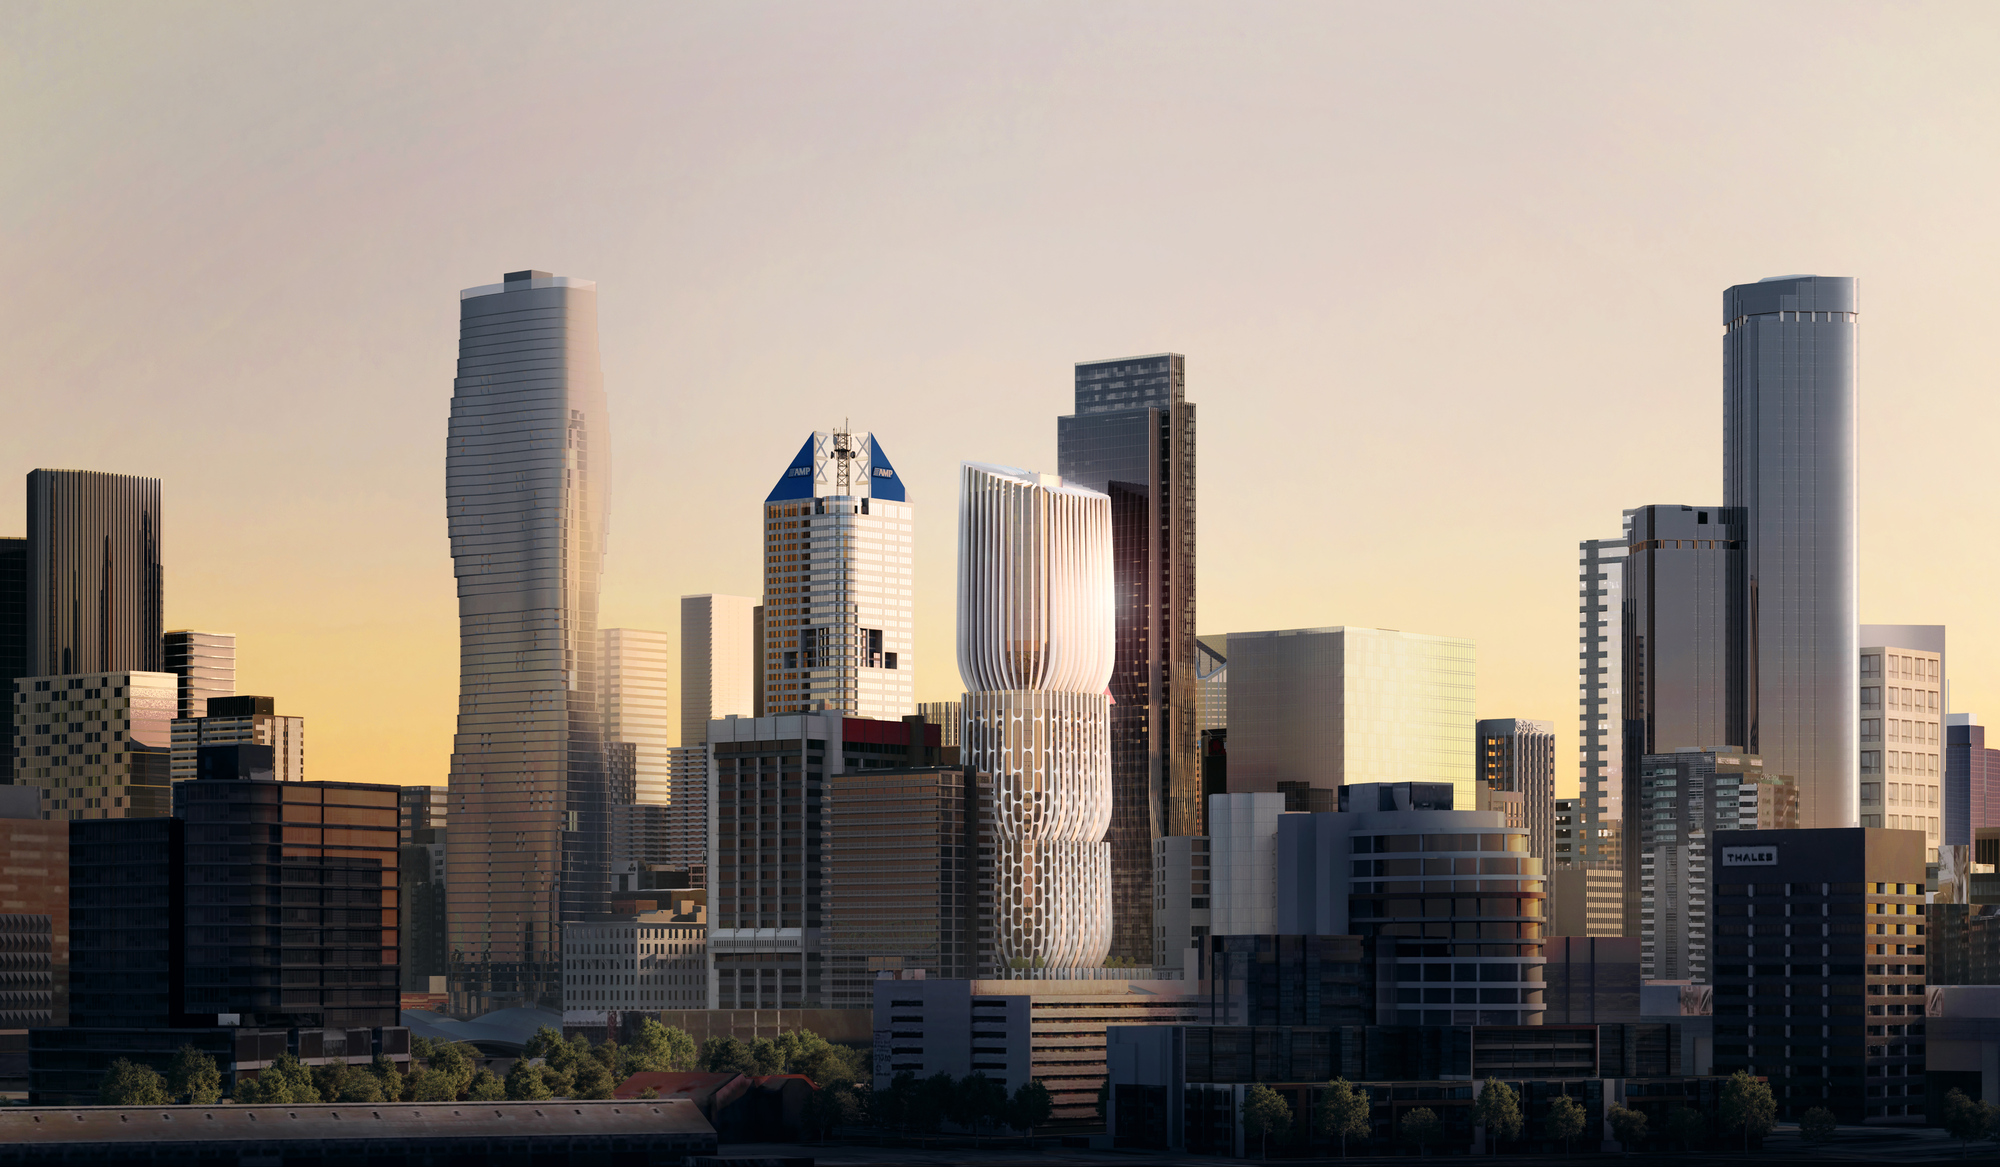 Gallery Of Zaha Hadid Architects Releases New Images Animation Of Quot Stacked Vase Quot Tower For